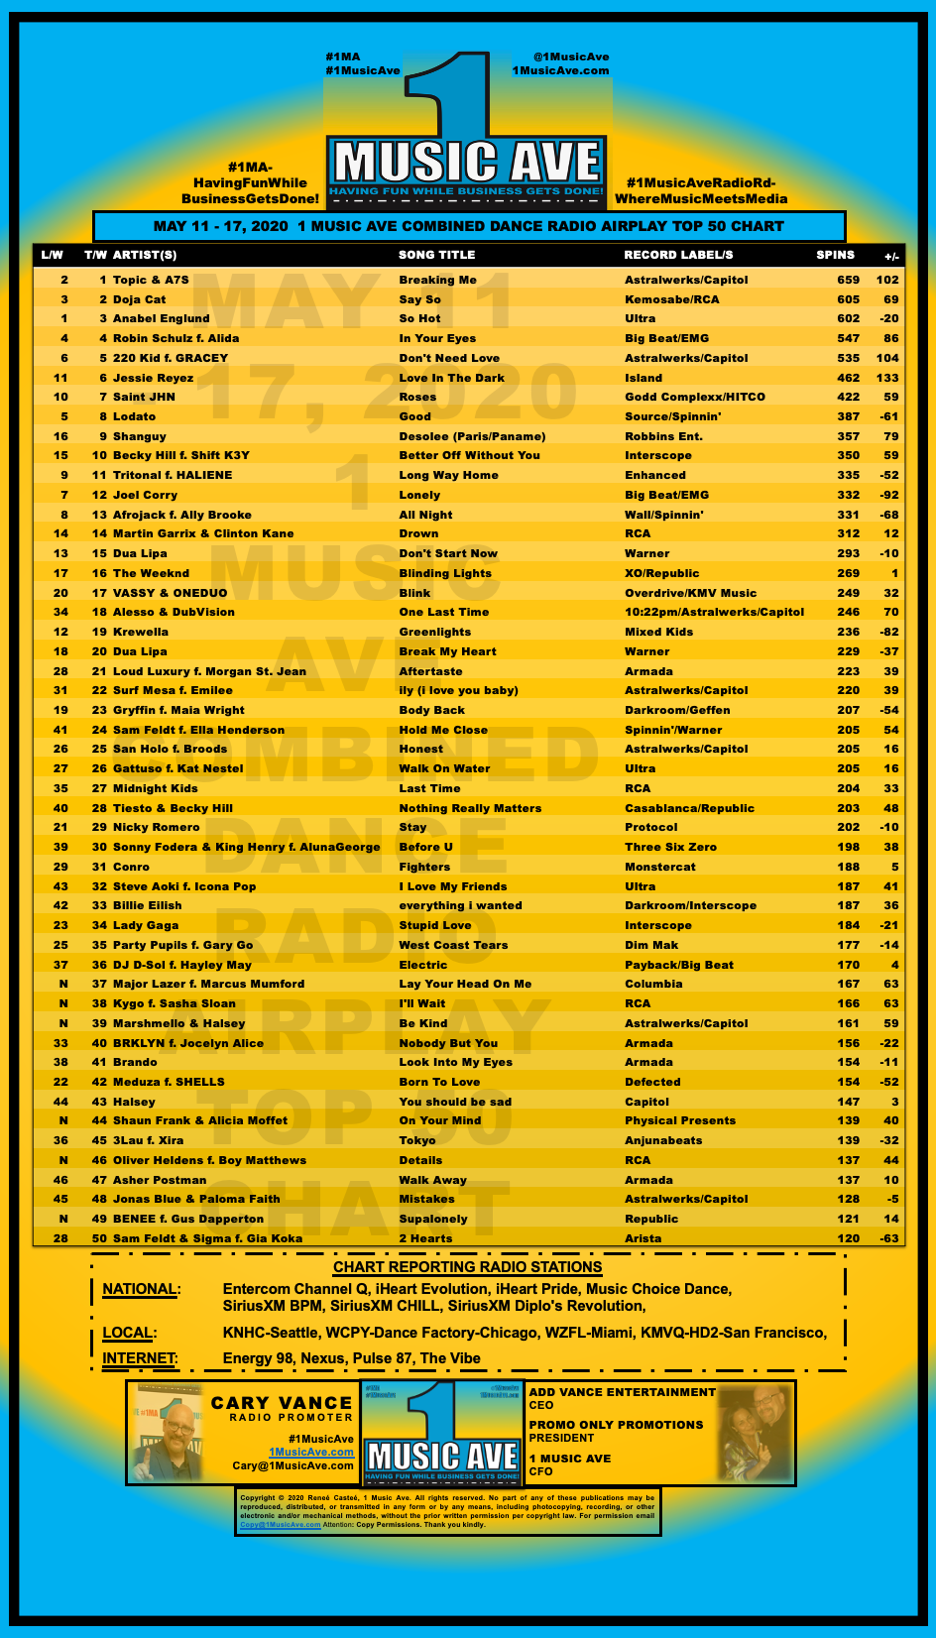 MAY 11 - 17, 2020 1 MUSIC AVE COMBINED DANCE RADIO AIRPLAY TOP 50 CHART